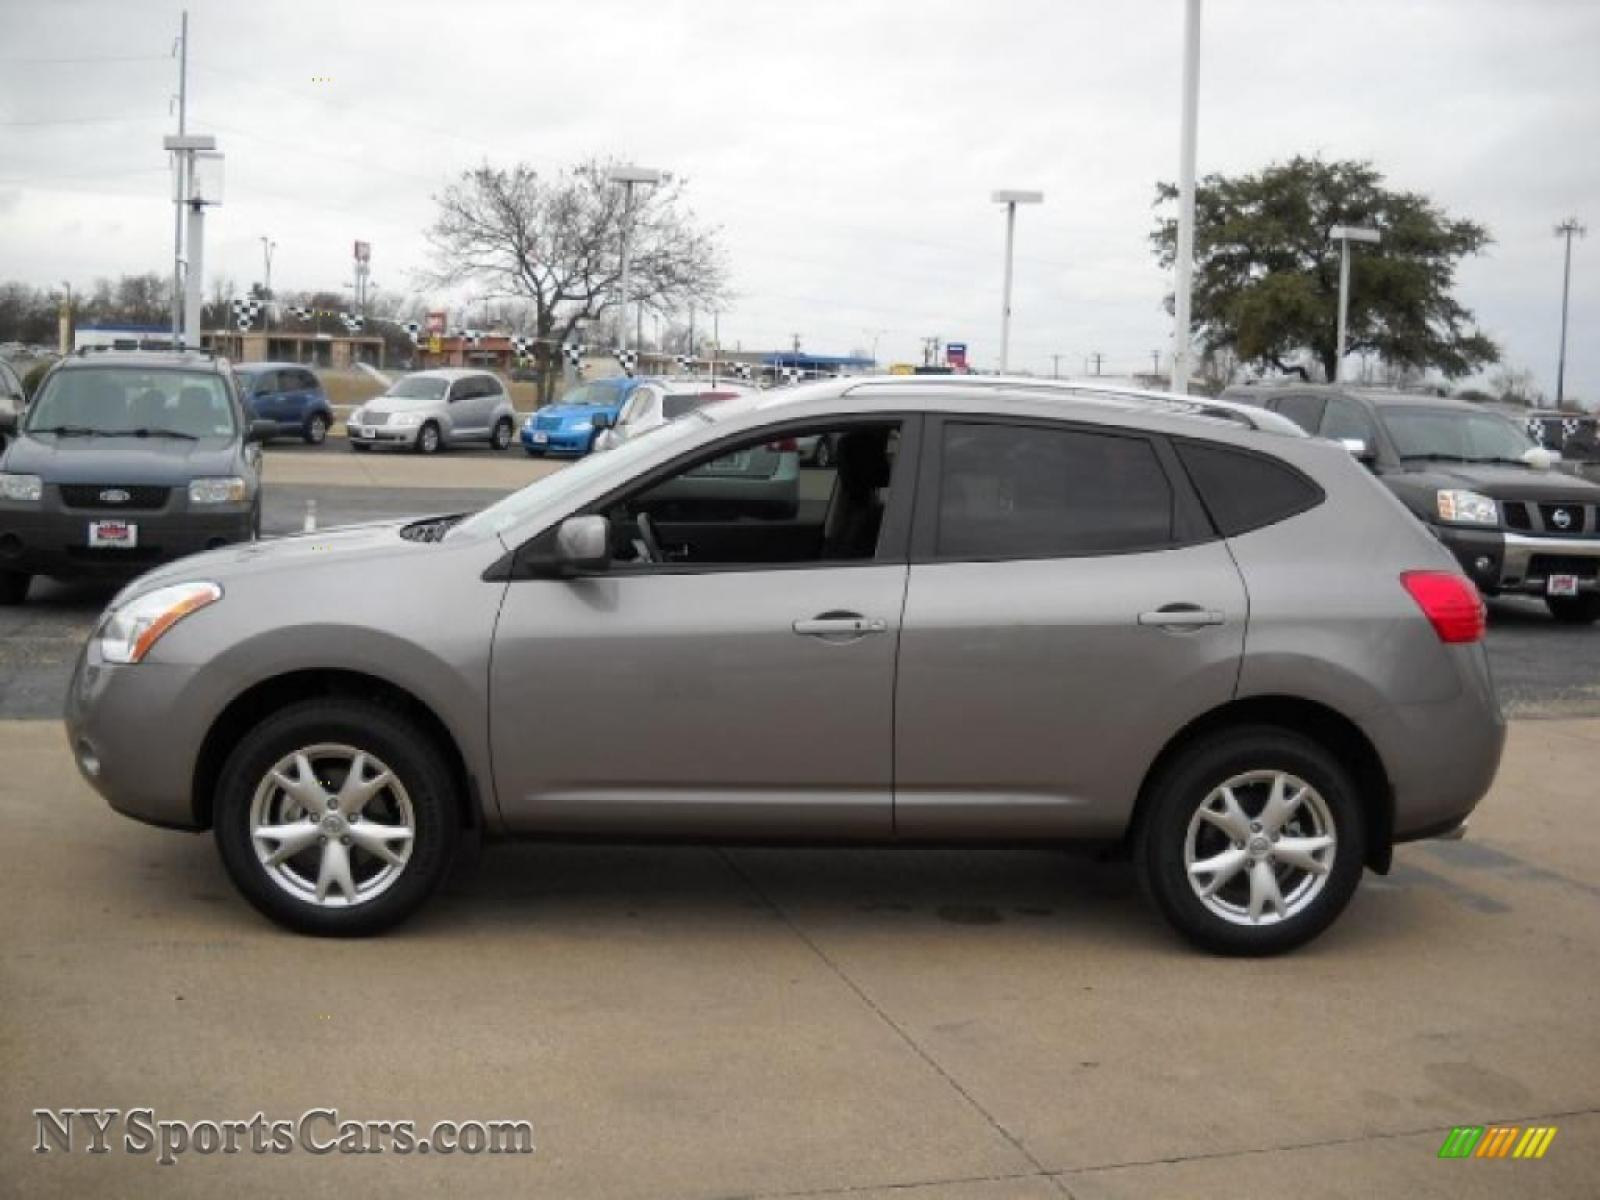 2009 Nissan Rogue Information And Photos Zombiedrive